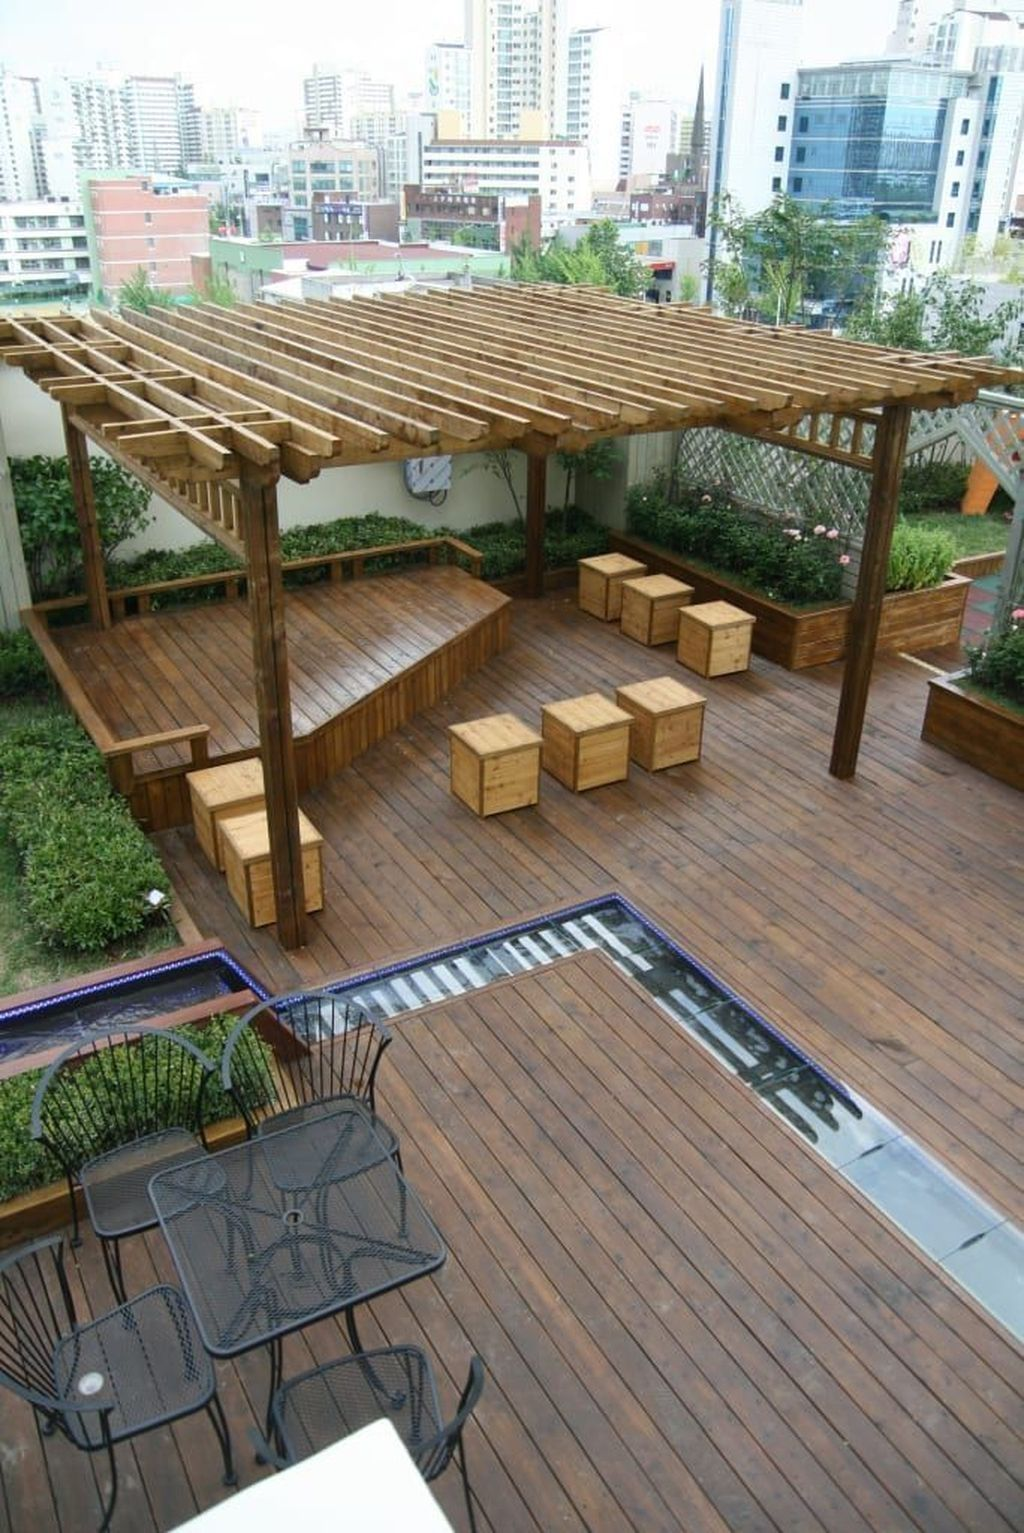 30 Attractive Terrace Design Ideas For Home On A Budget To Have In 2020 Rooftop Garden Urban Rooftop Terrace Design Rooftop Design